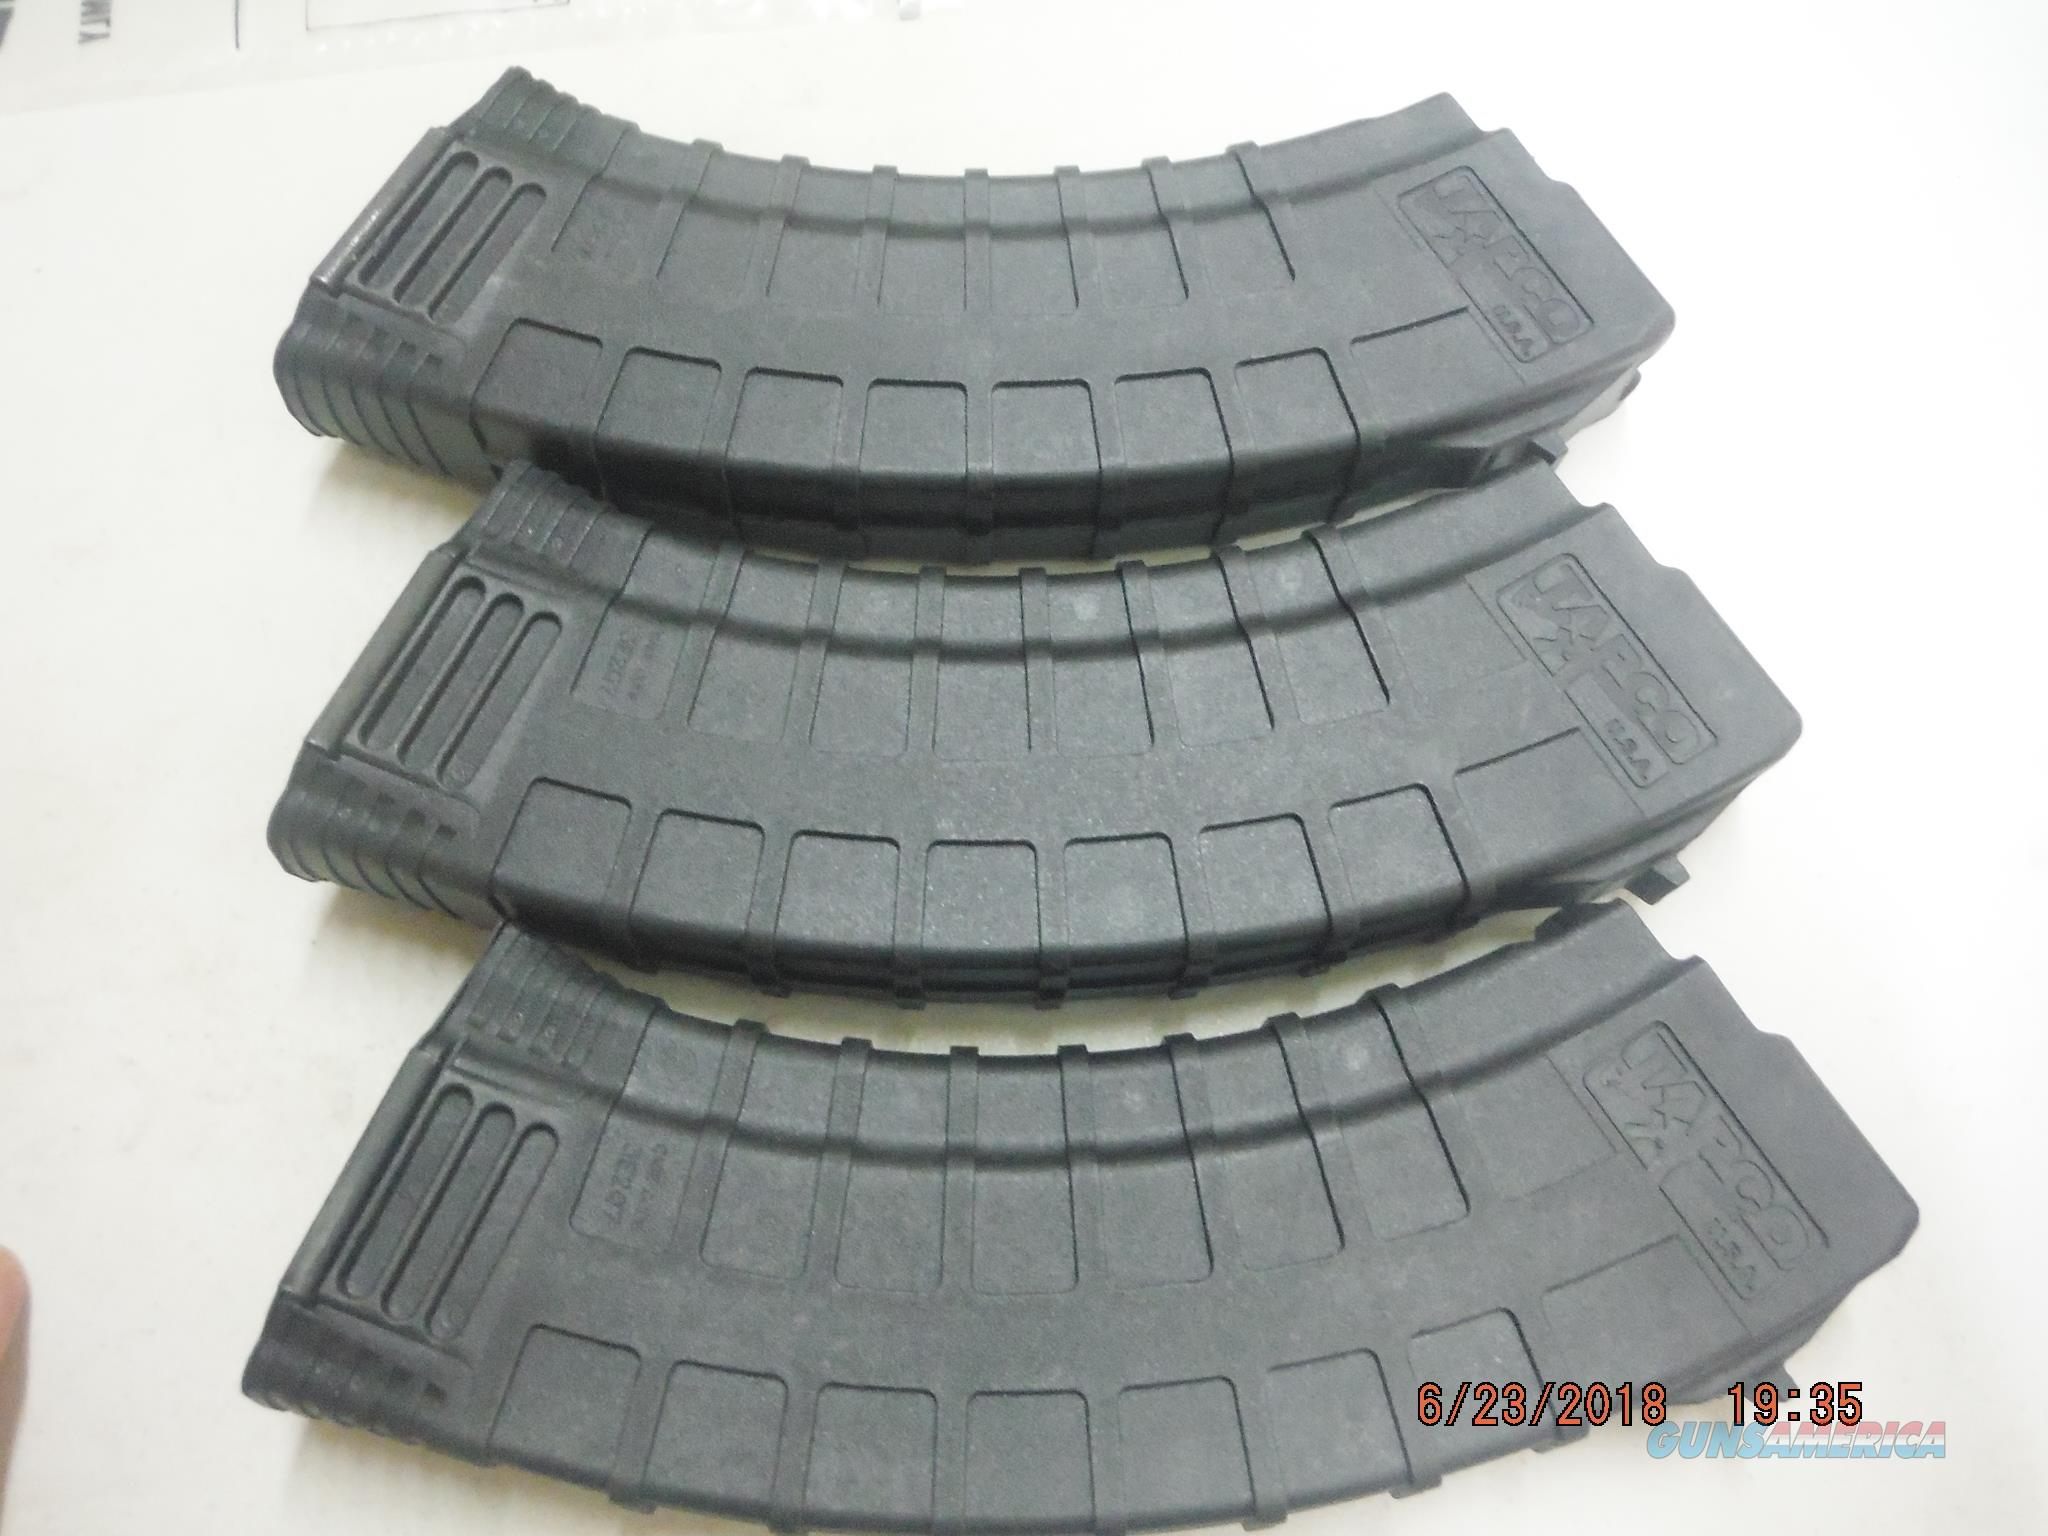 3 Tapco AK-47 / AK47 Magazine 7.62X39 30rd poly Mags AK47 New,  Non-Guns > Magazines & Clips > Rifle Magazines > AK Family